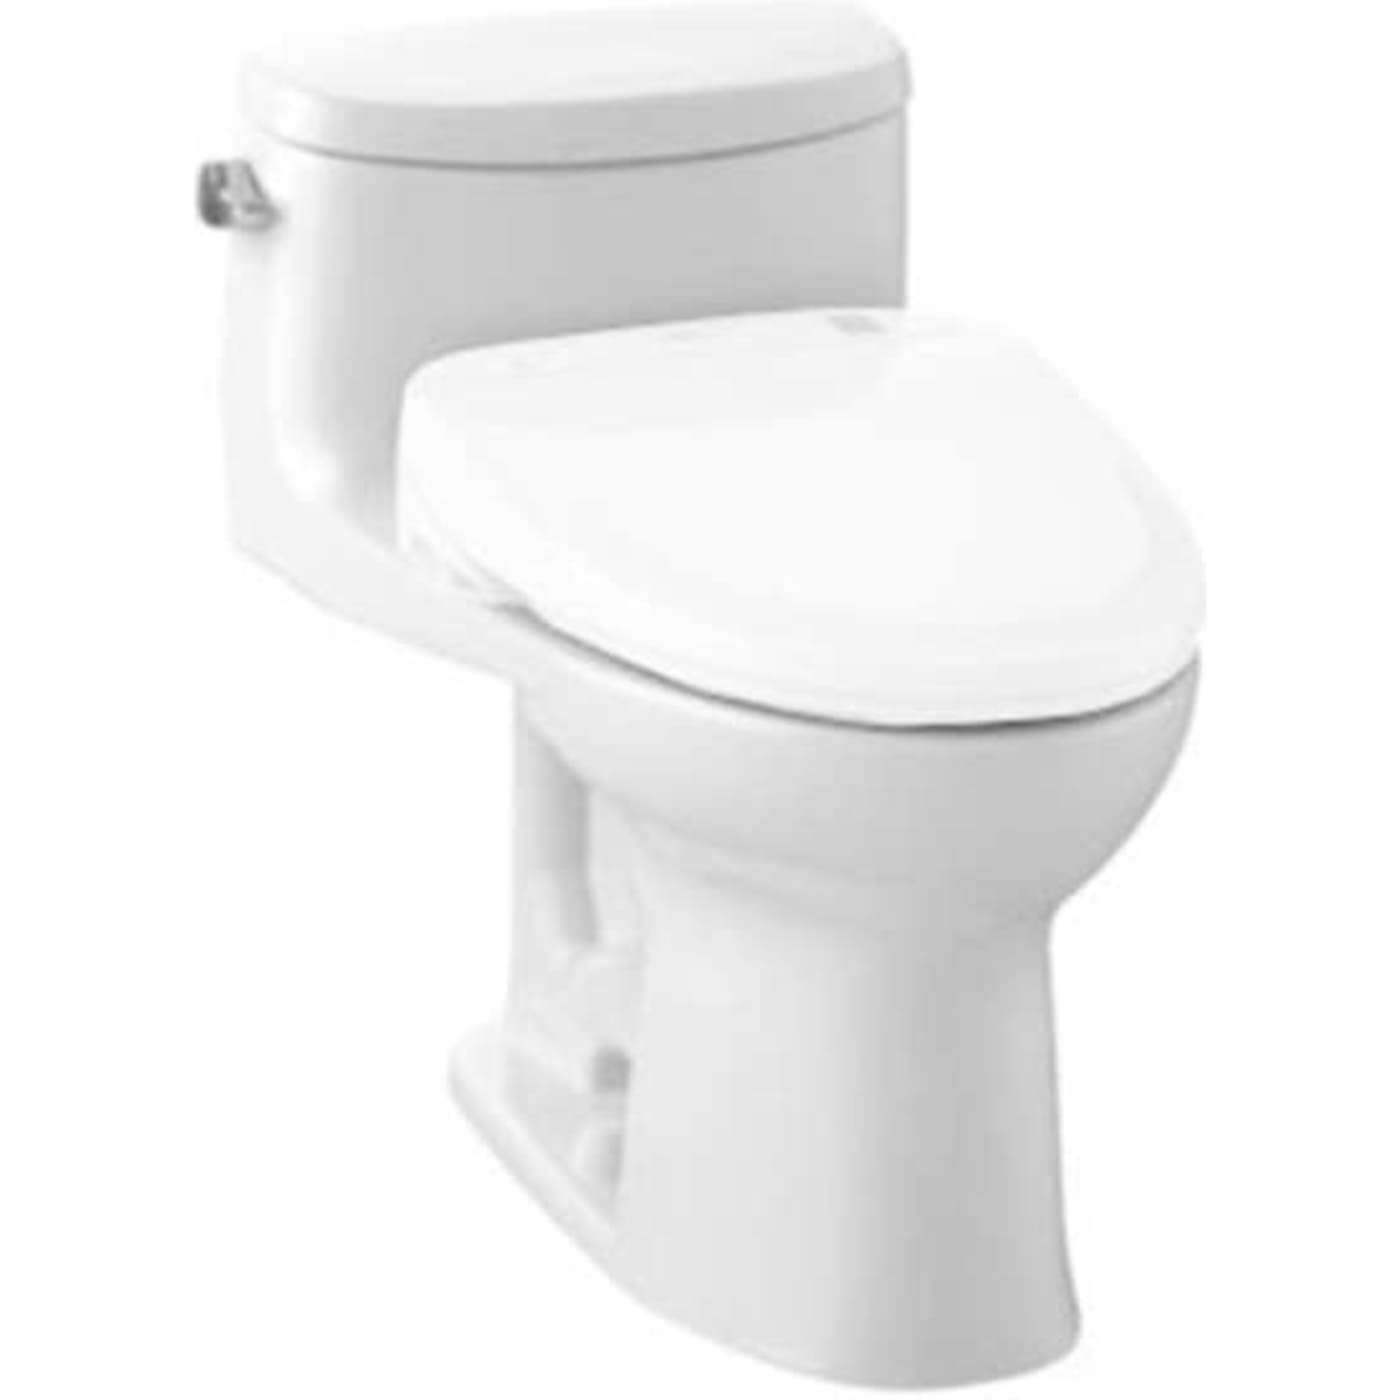 CST634CEFGT20#01 by Toto - Toilets | Goedekers.com